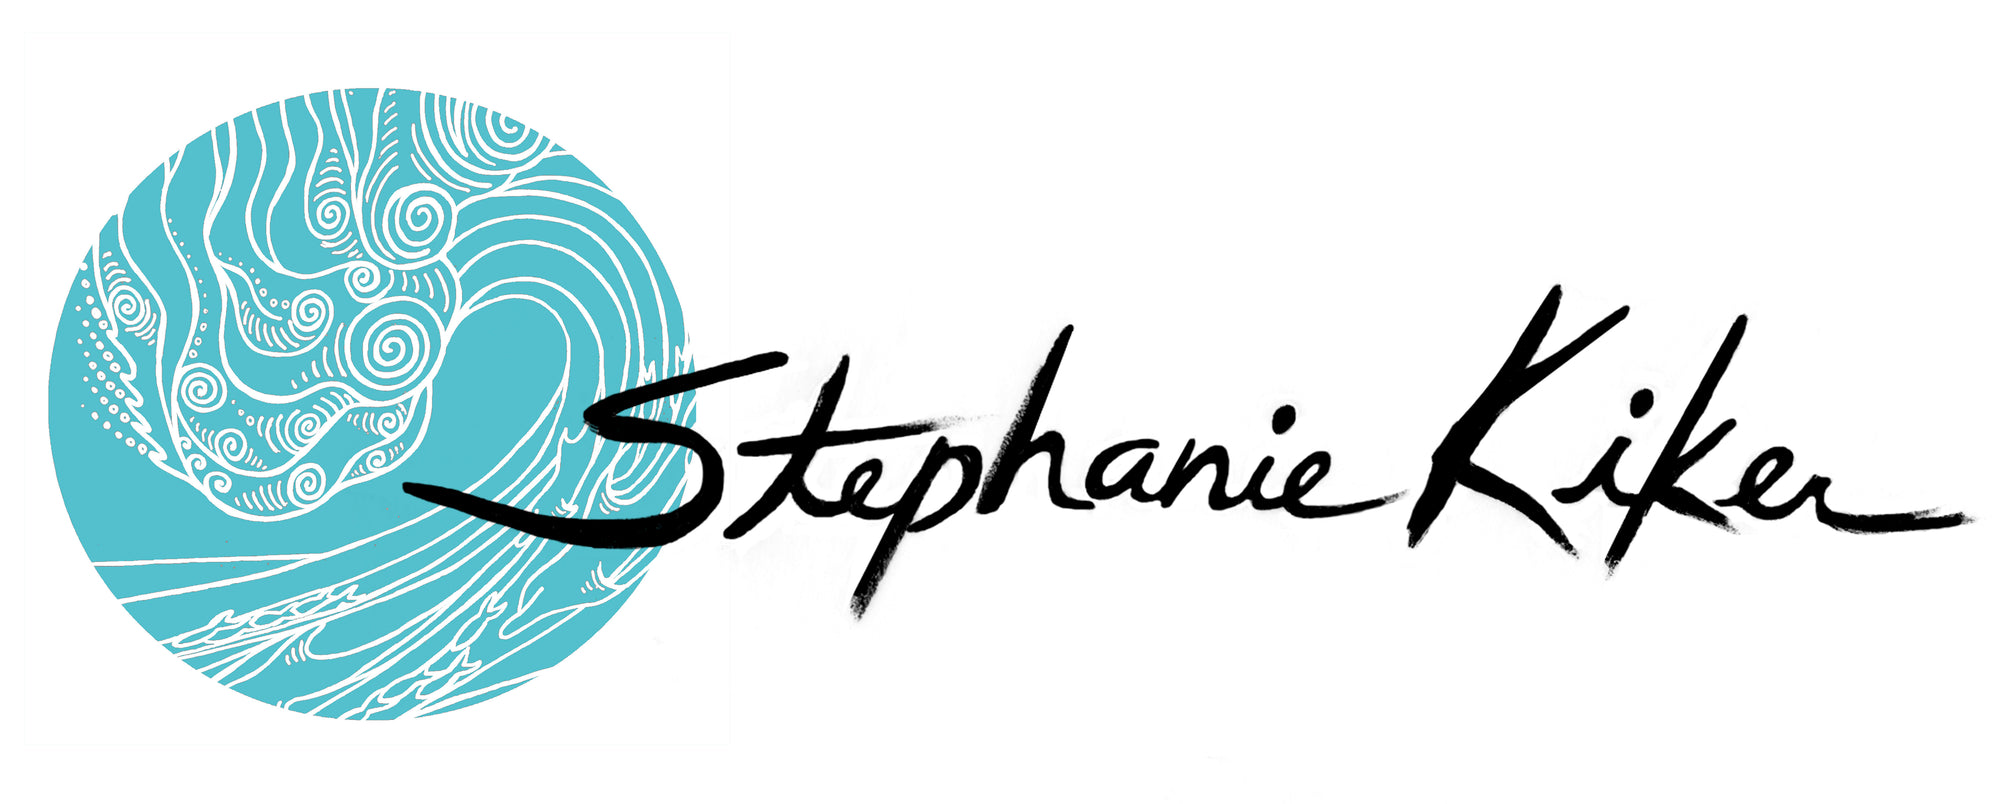 Stephanie Kiker Designs